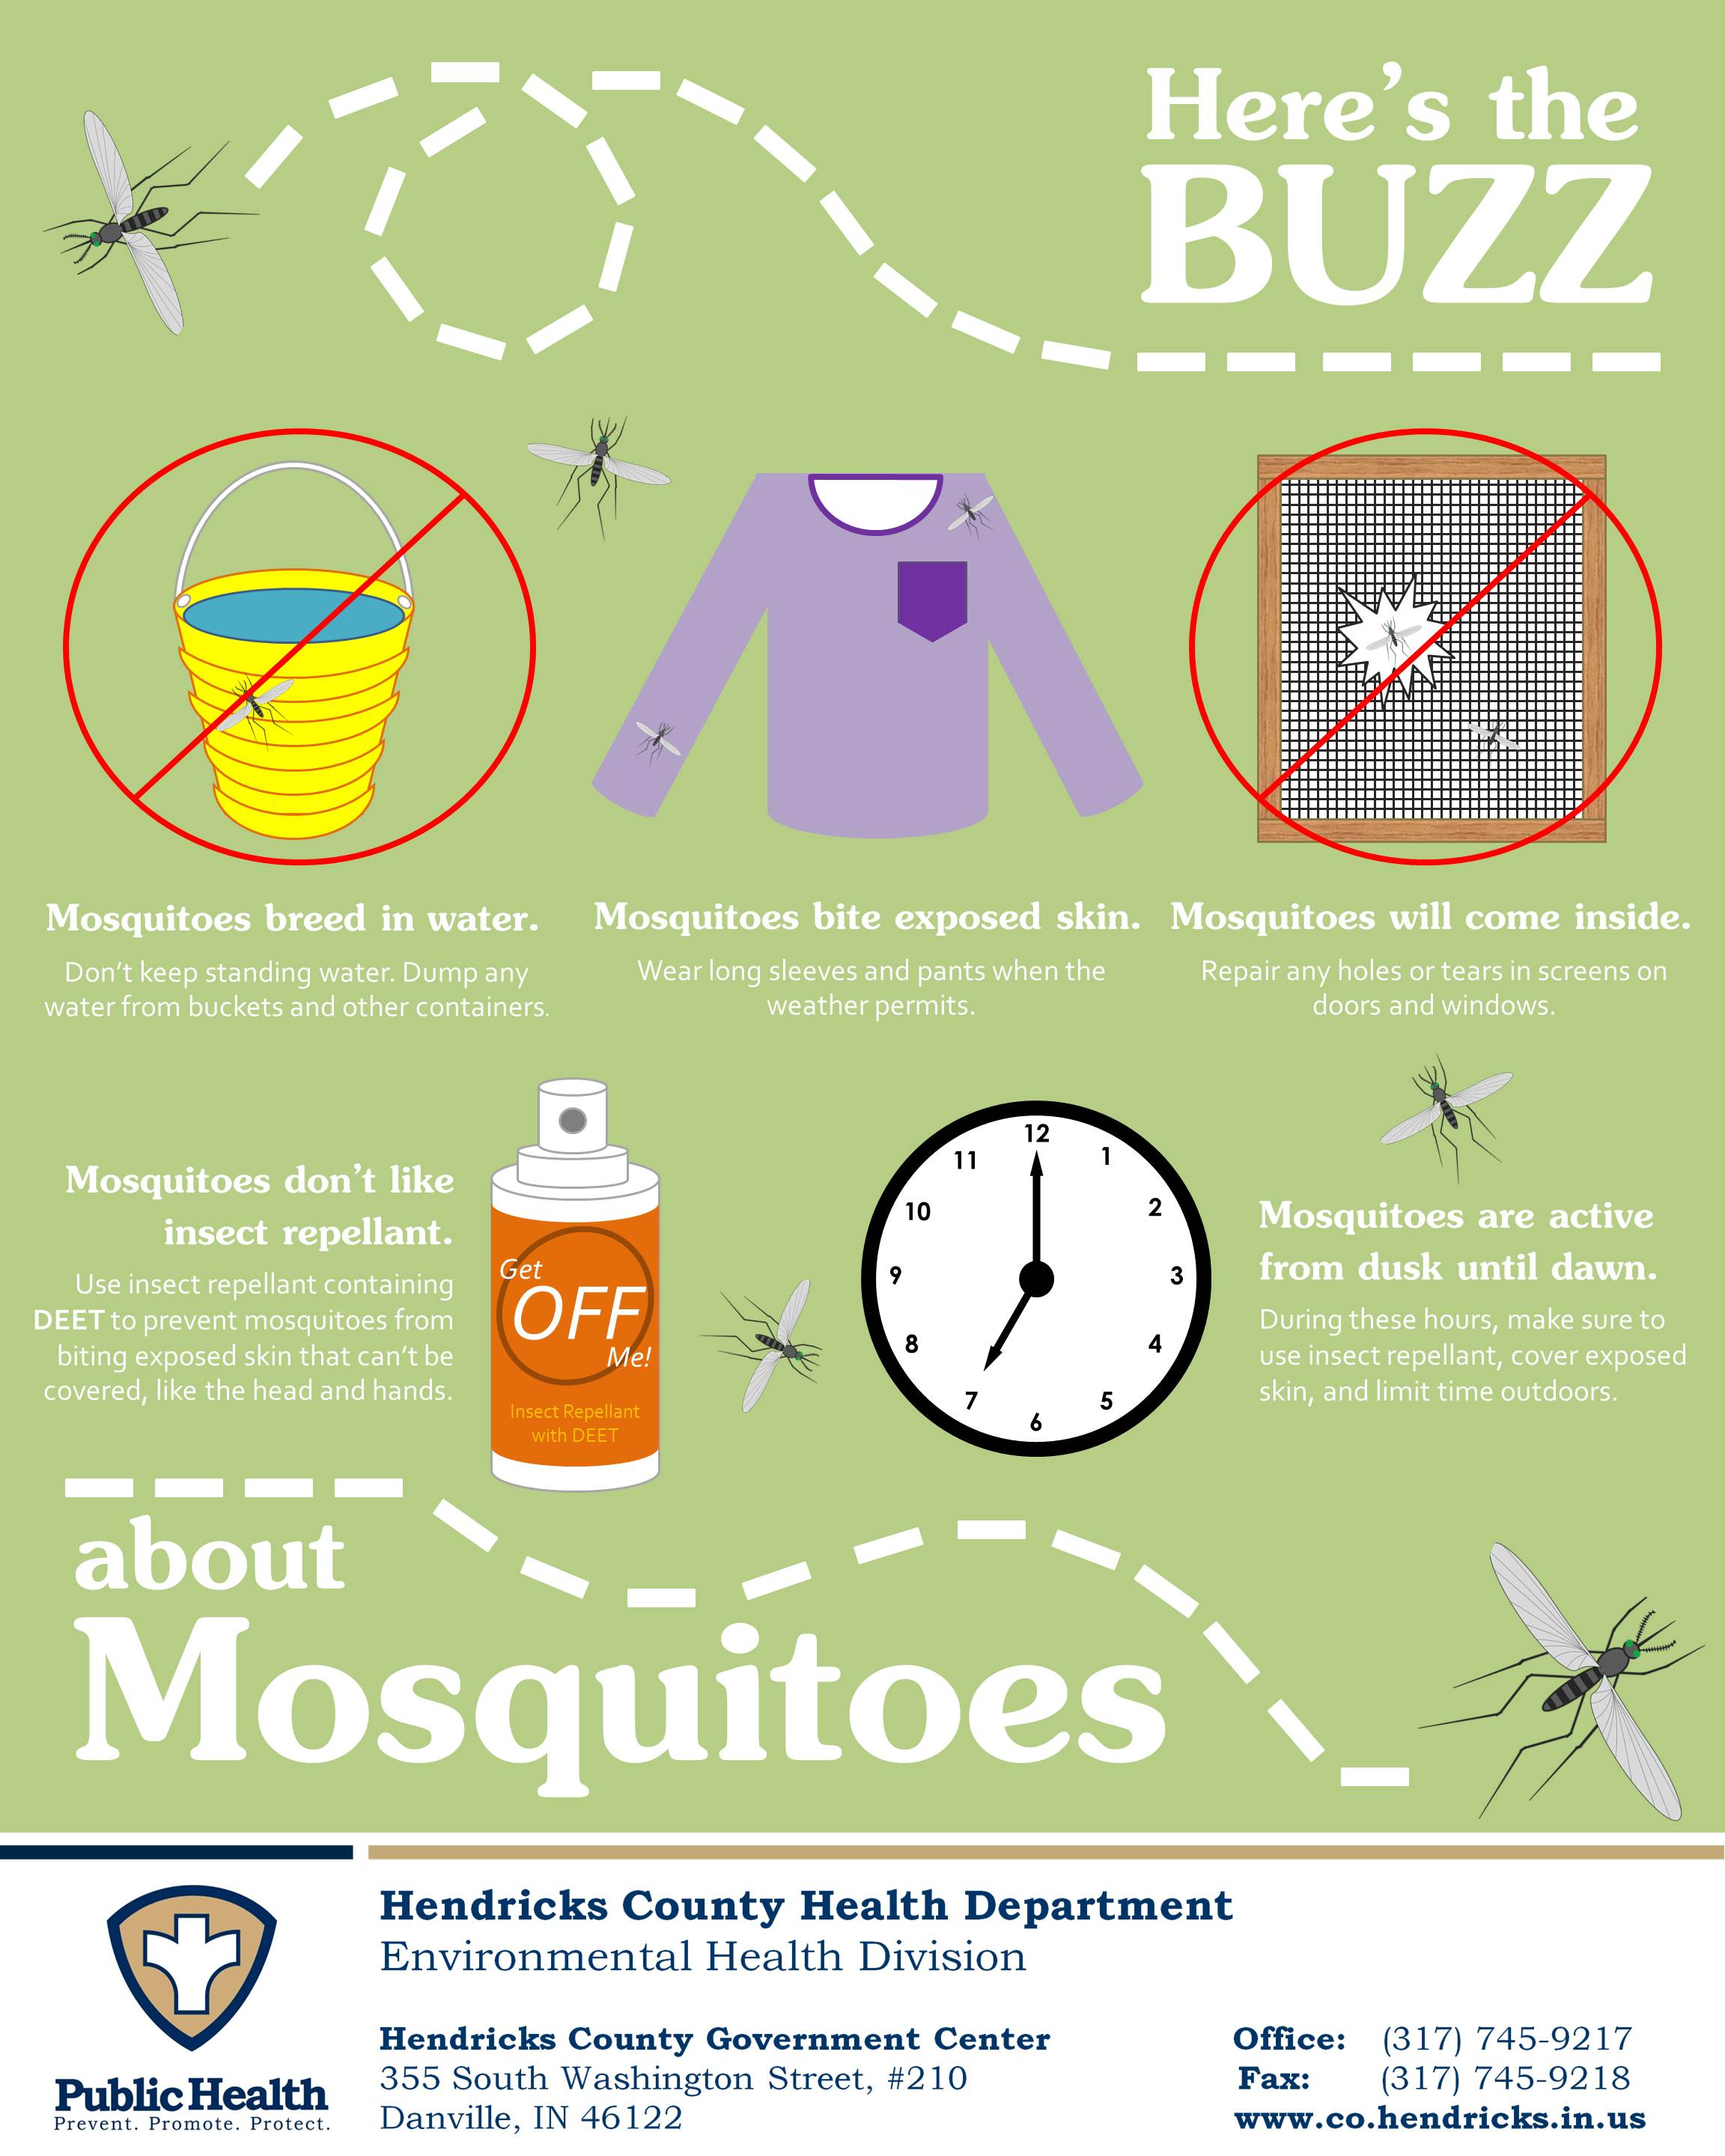 Here's the Buzz about Mosquitoes